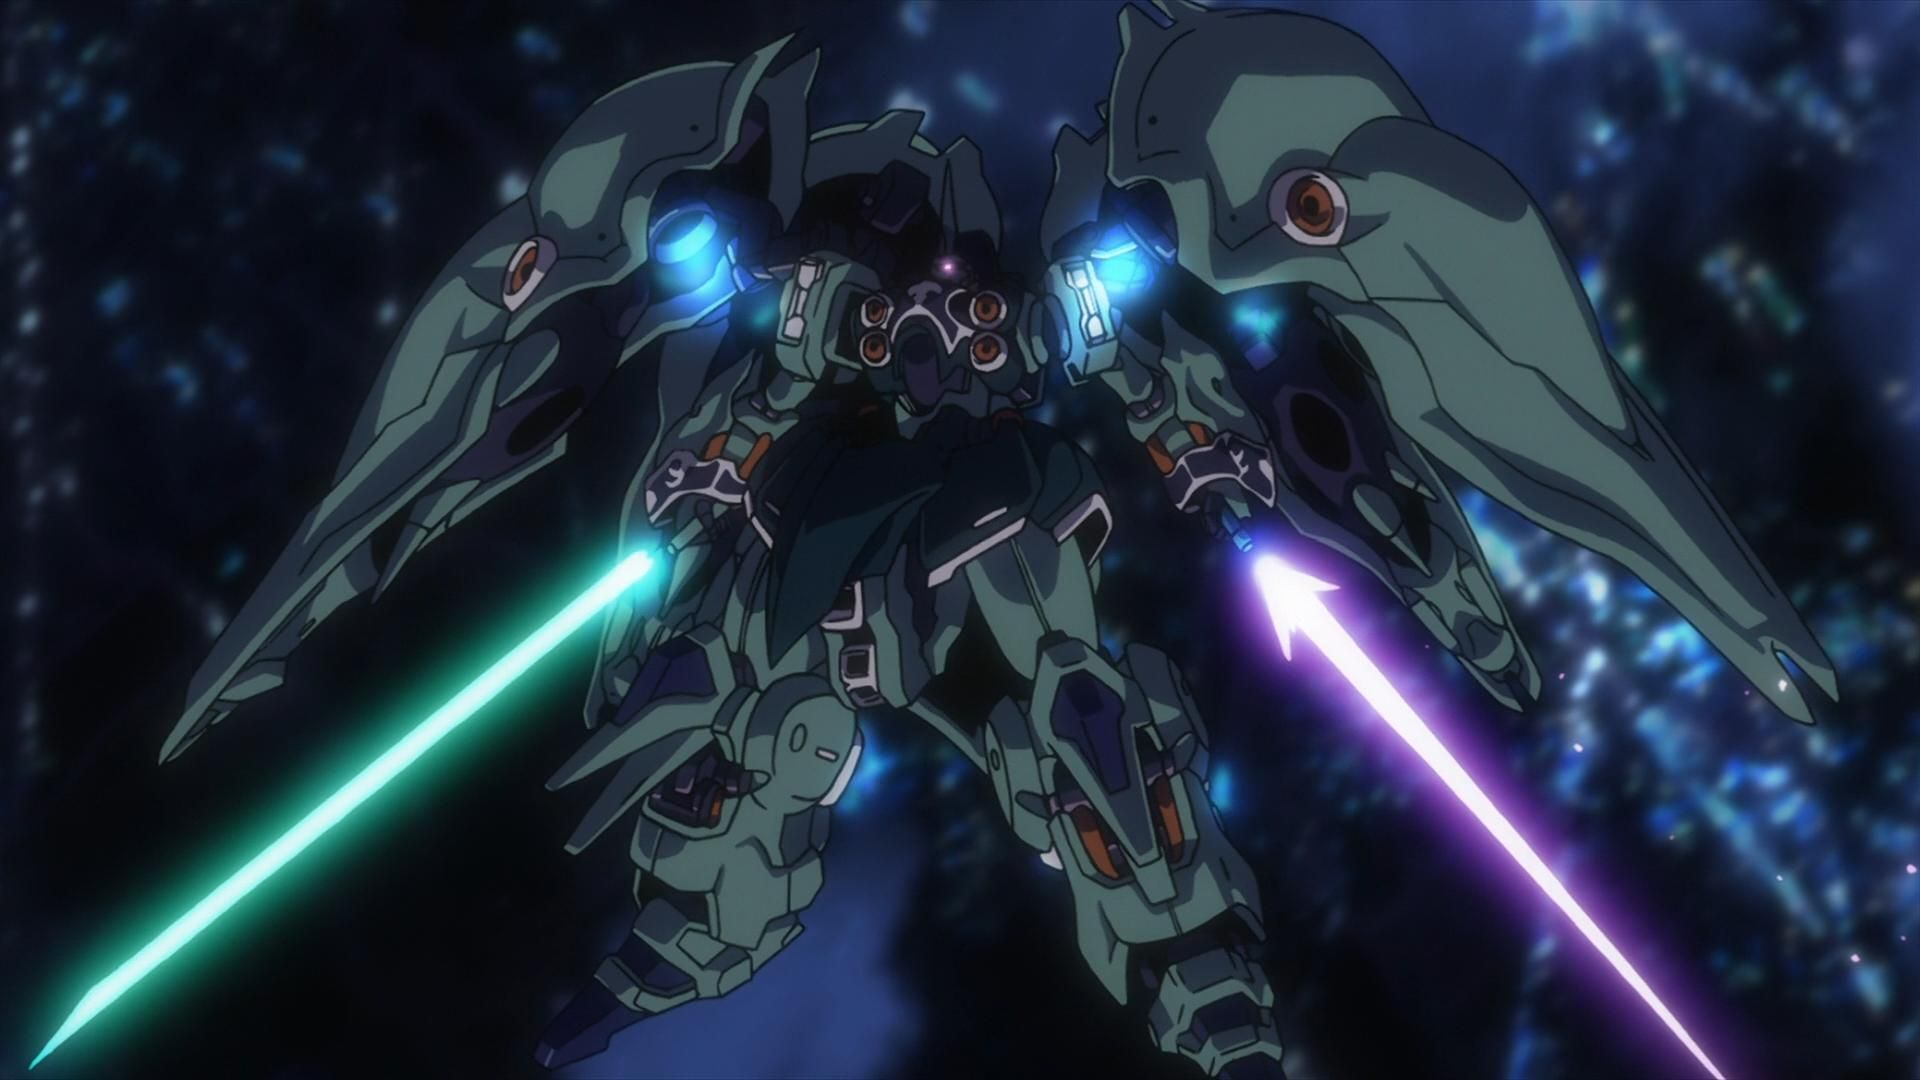 Gn gundam exia wallpaper anime wallpapers hd wallpapers gn gundam exia wallpaper anime wallpapers voltagebd Images